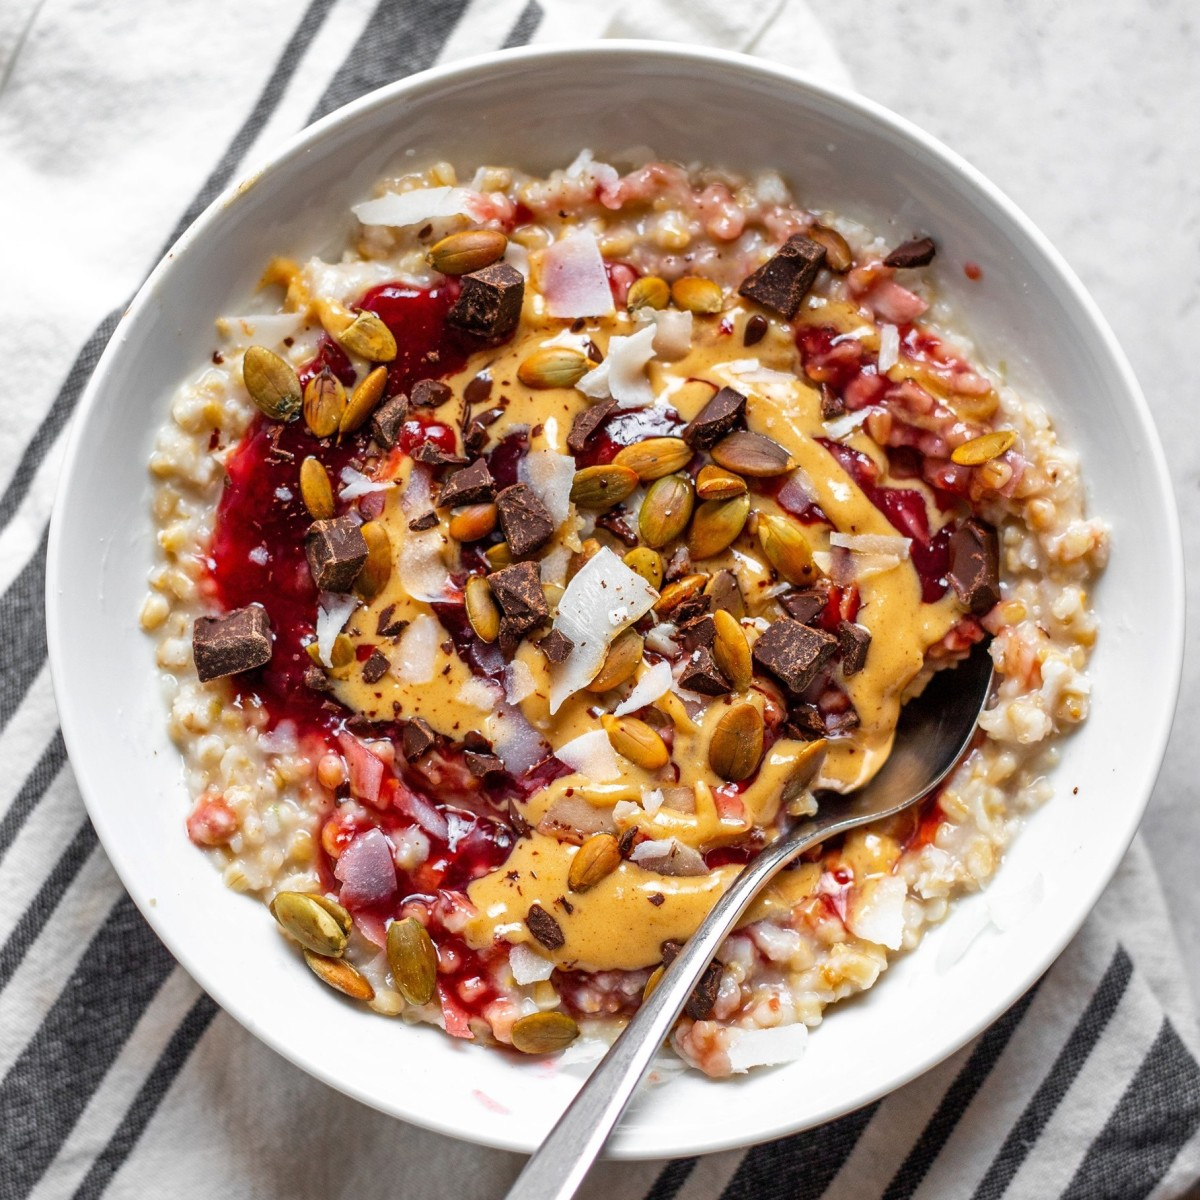 Simply Breakfast Challenge from Good Food Made Simple